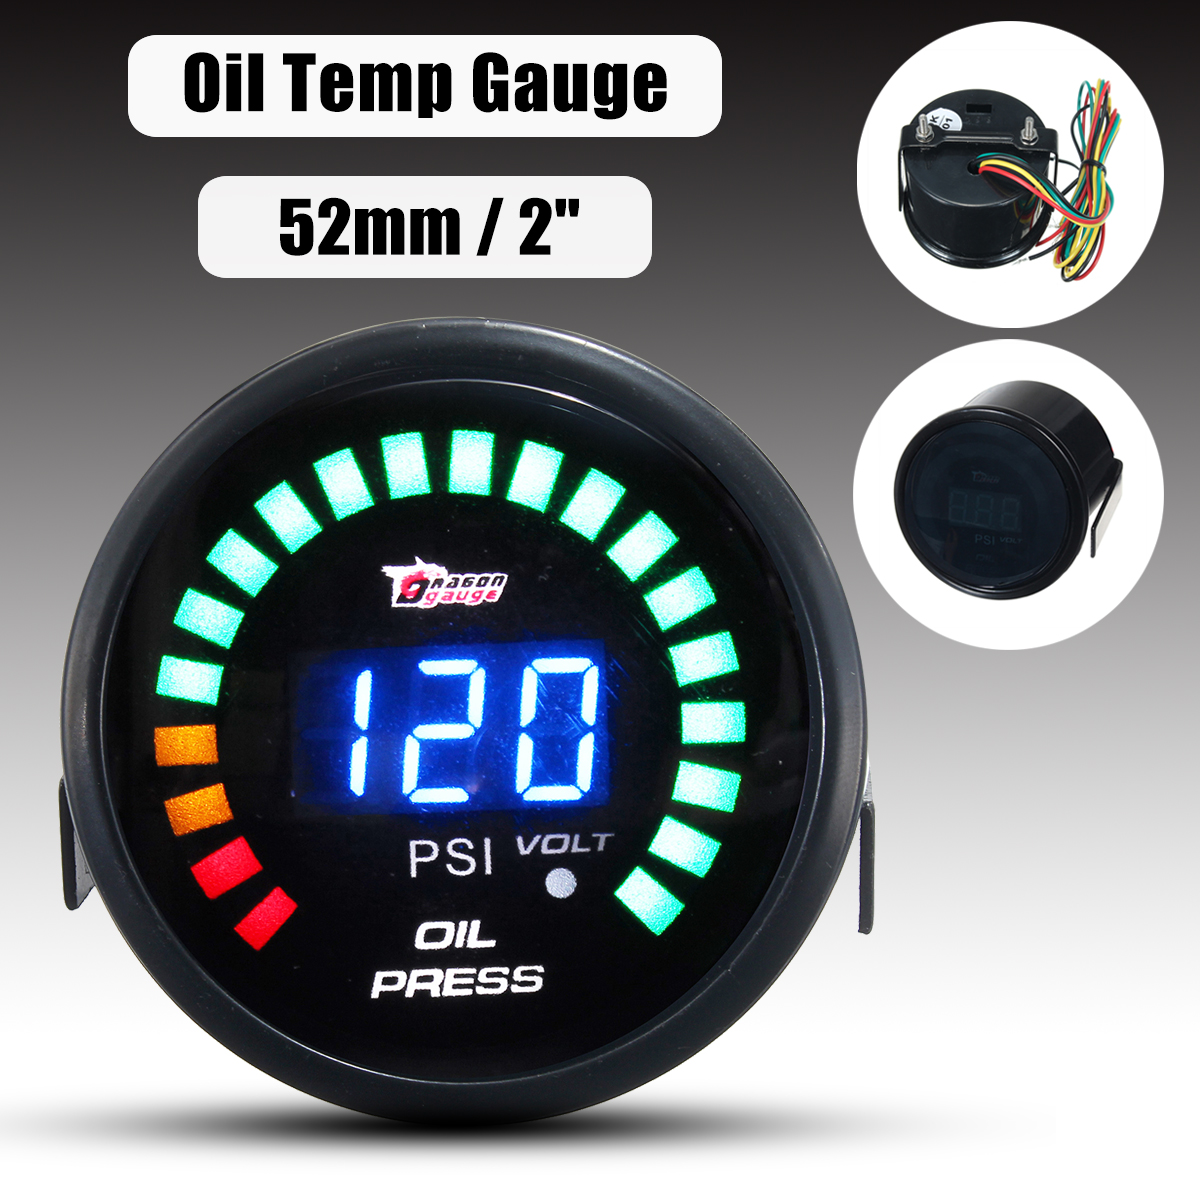 2  52mm LED Car Digital Voltmeter Oil Press Pressure PSI Gauge Meter Pointer with Sensor DC 12V cnspeed 252mm 12v car auto oil press gauge 0 7bar oil pressure guage with sensor smoke lens racing white led car pressure meter